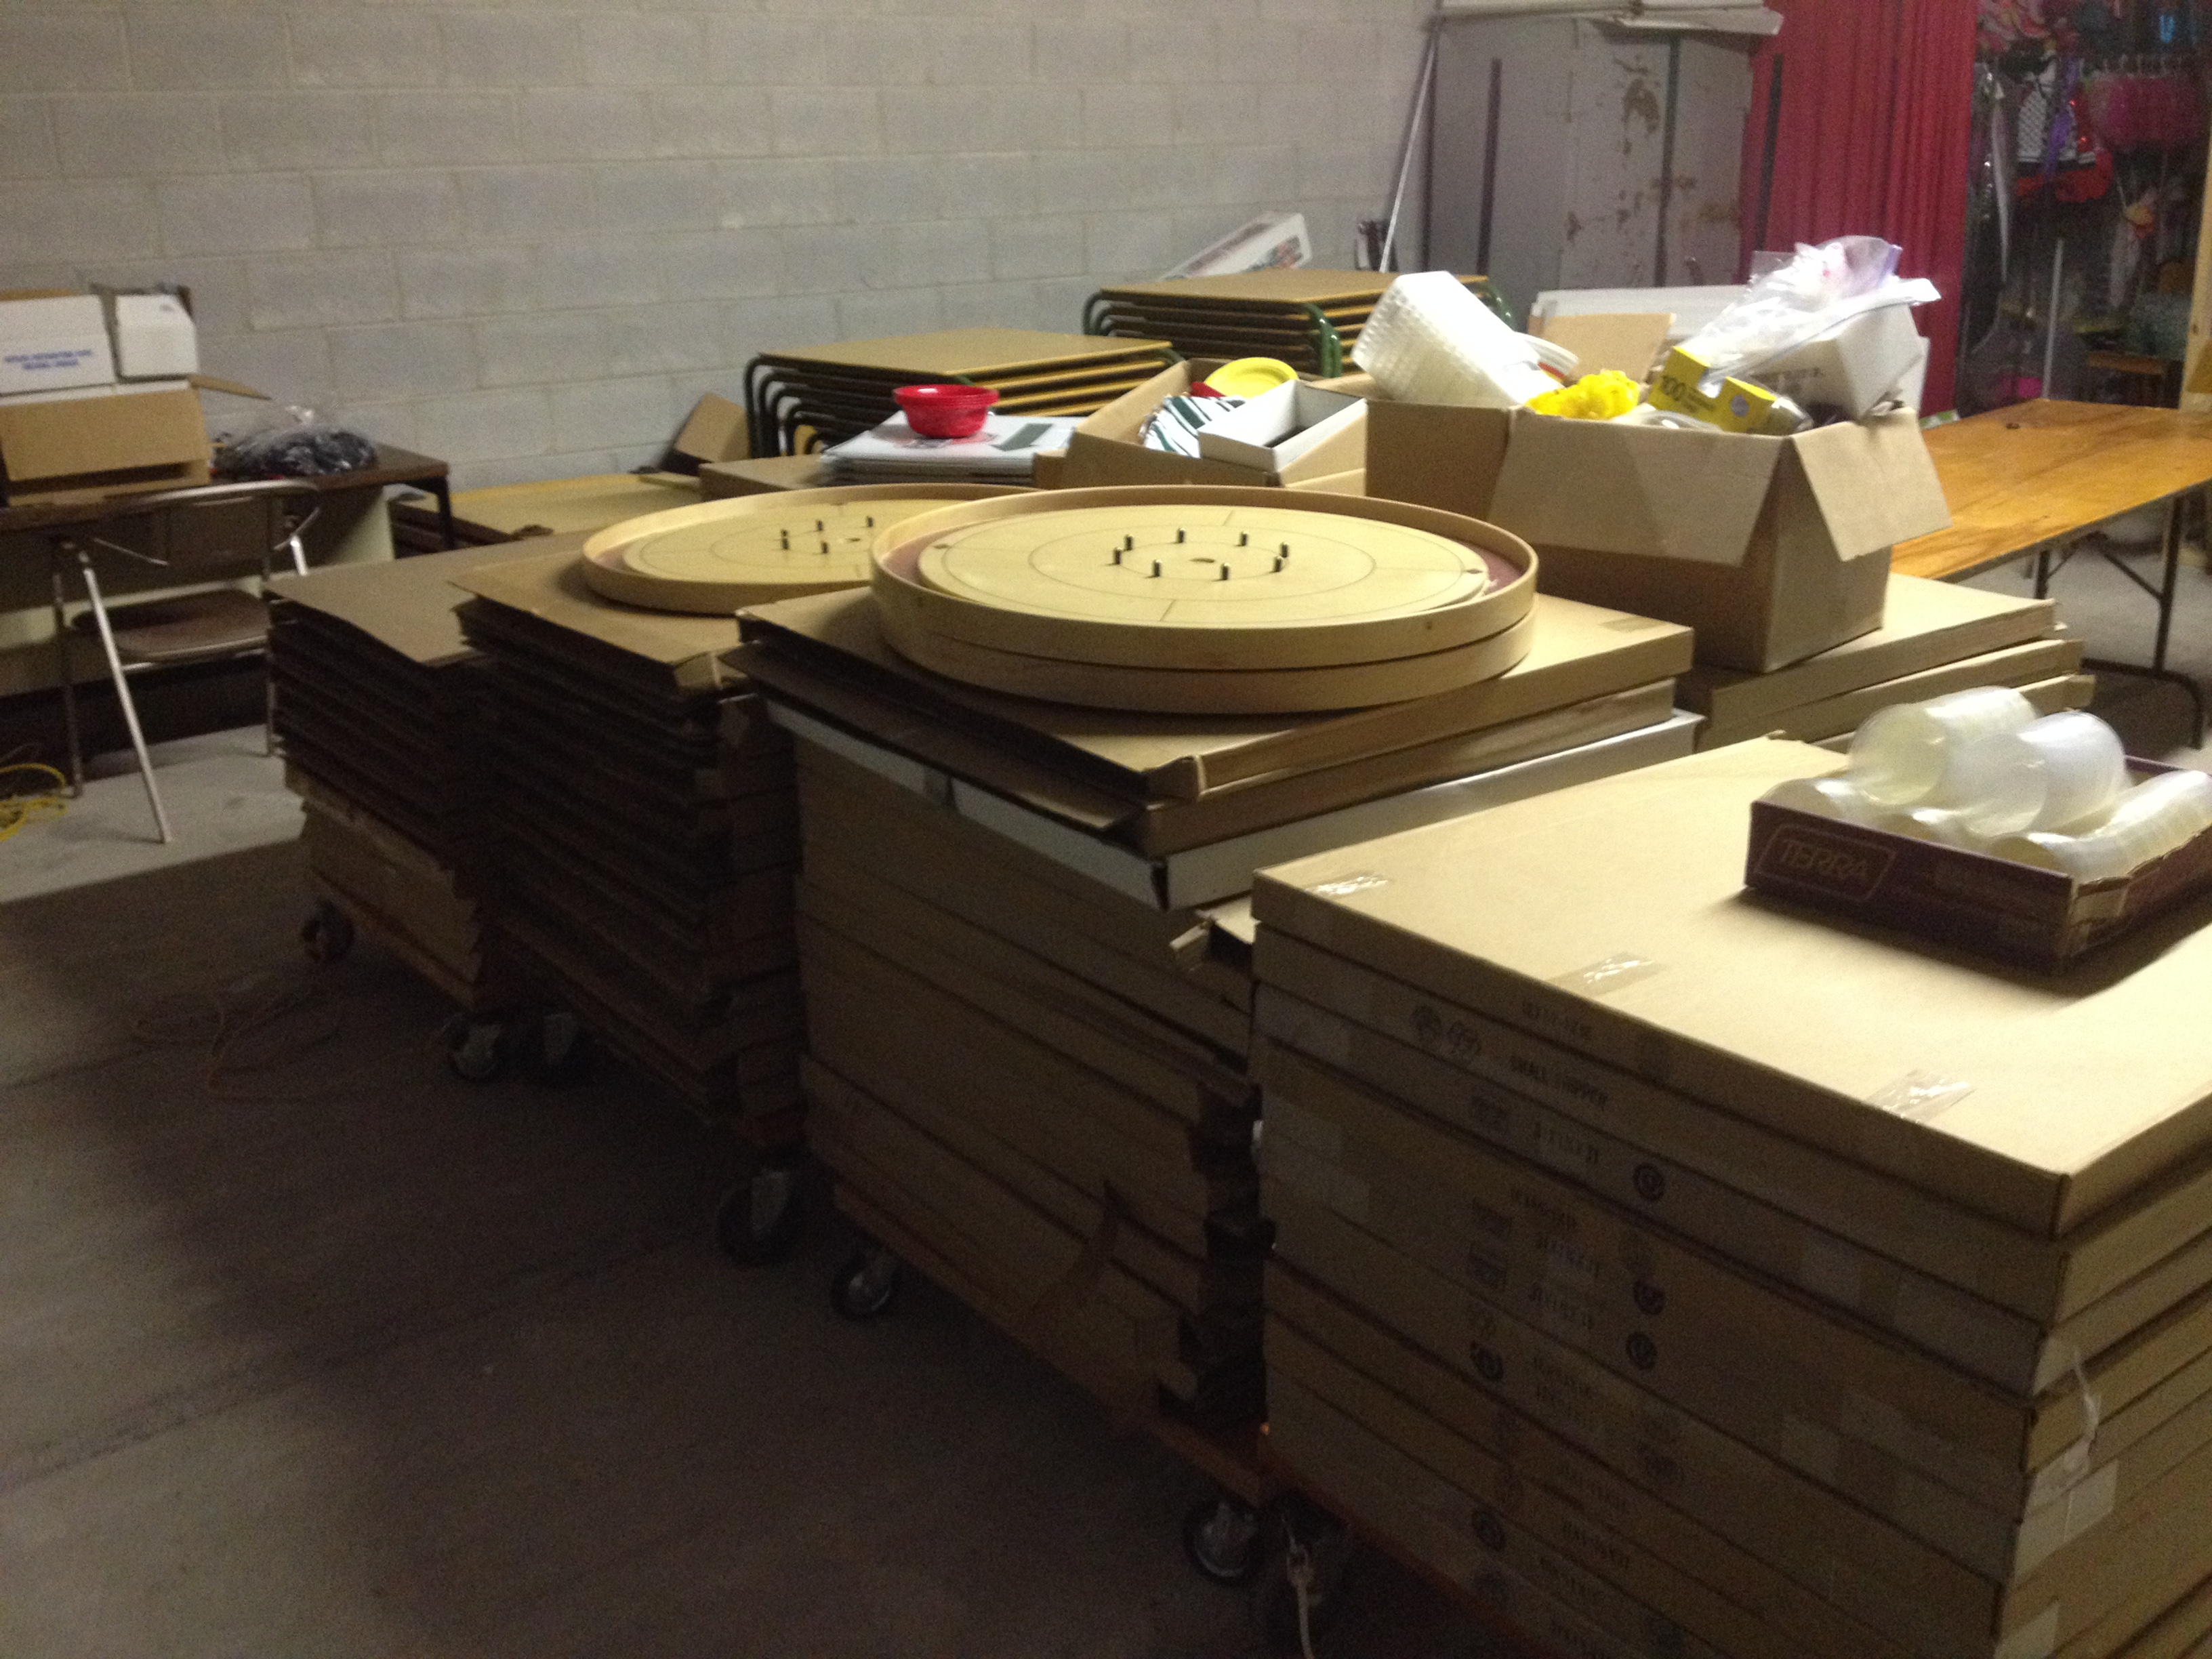 Multiple stacks of crokinole boards sit in storage after being packed up following the 2019 WCC event